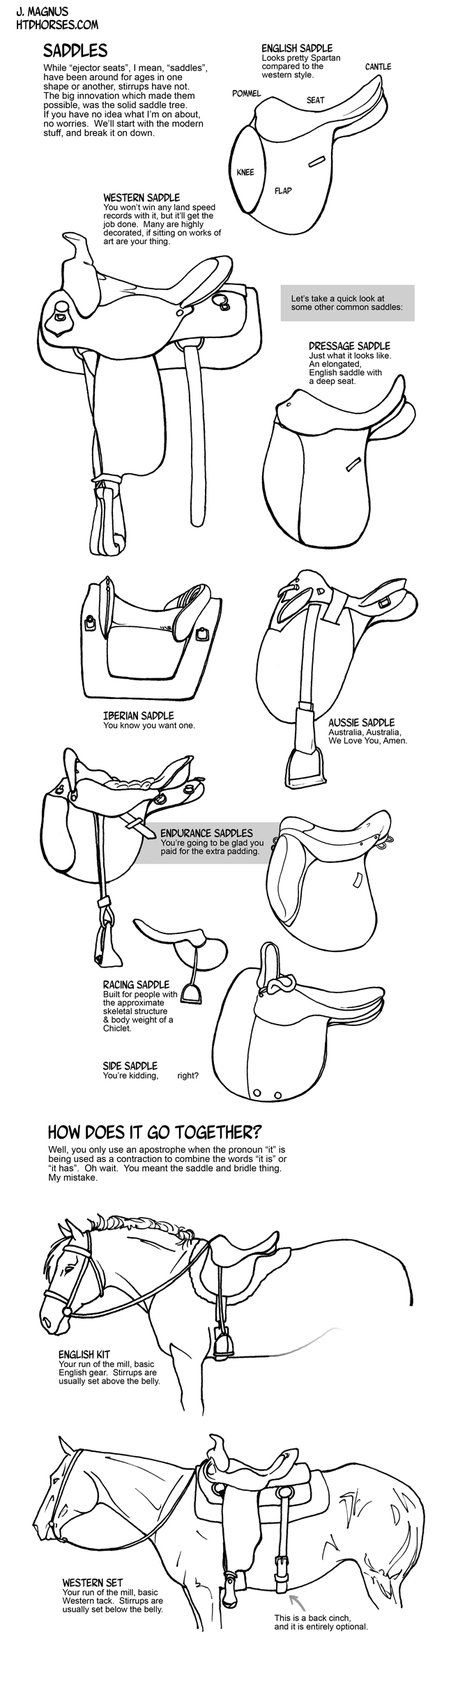 How to draw tack Saddles by sketcherjak on DeviantArt